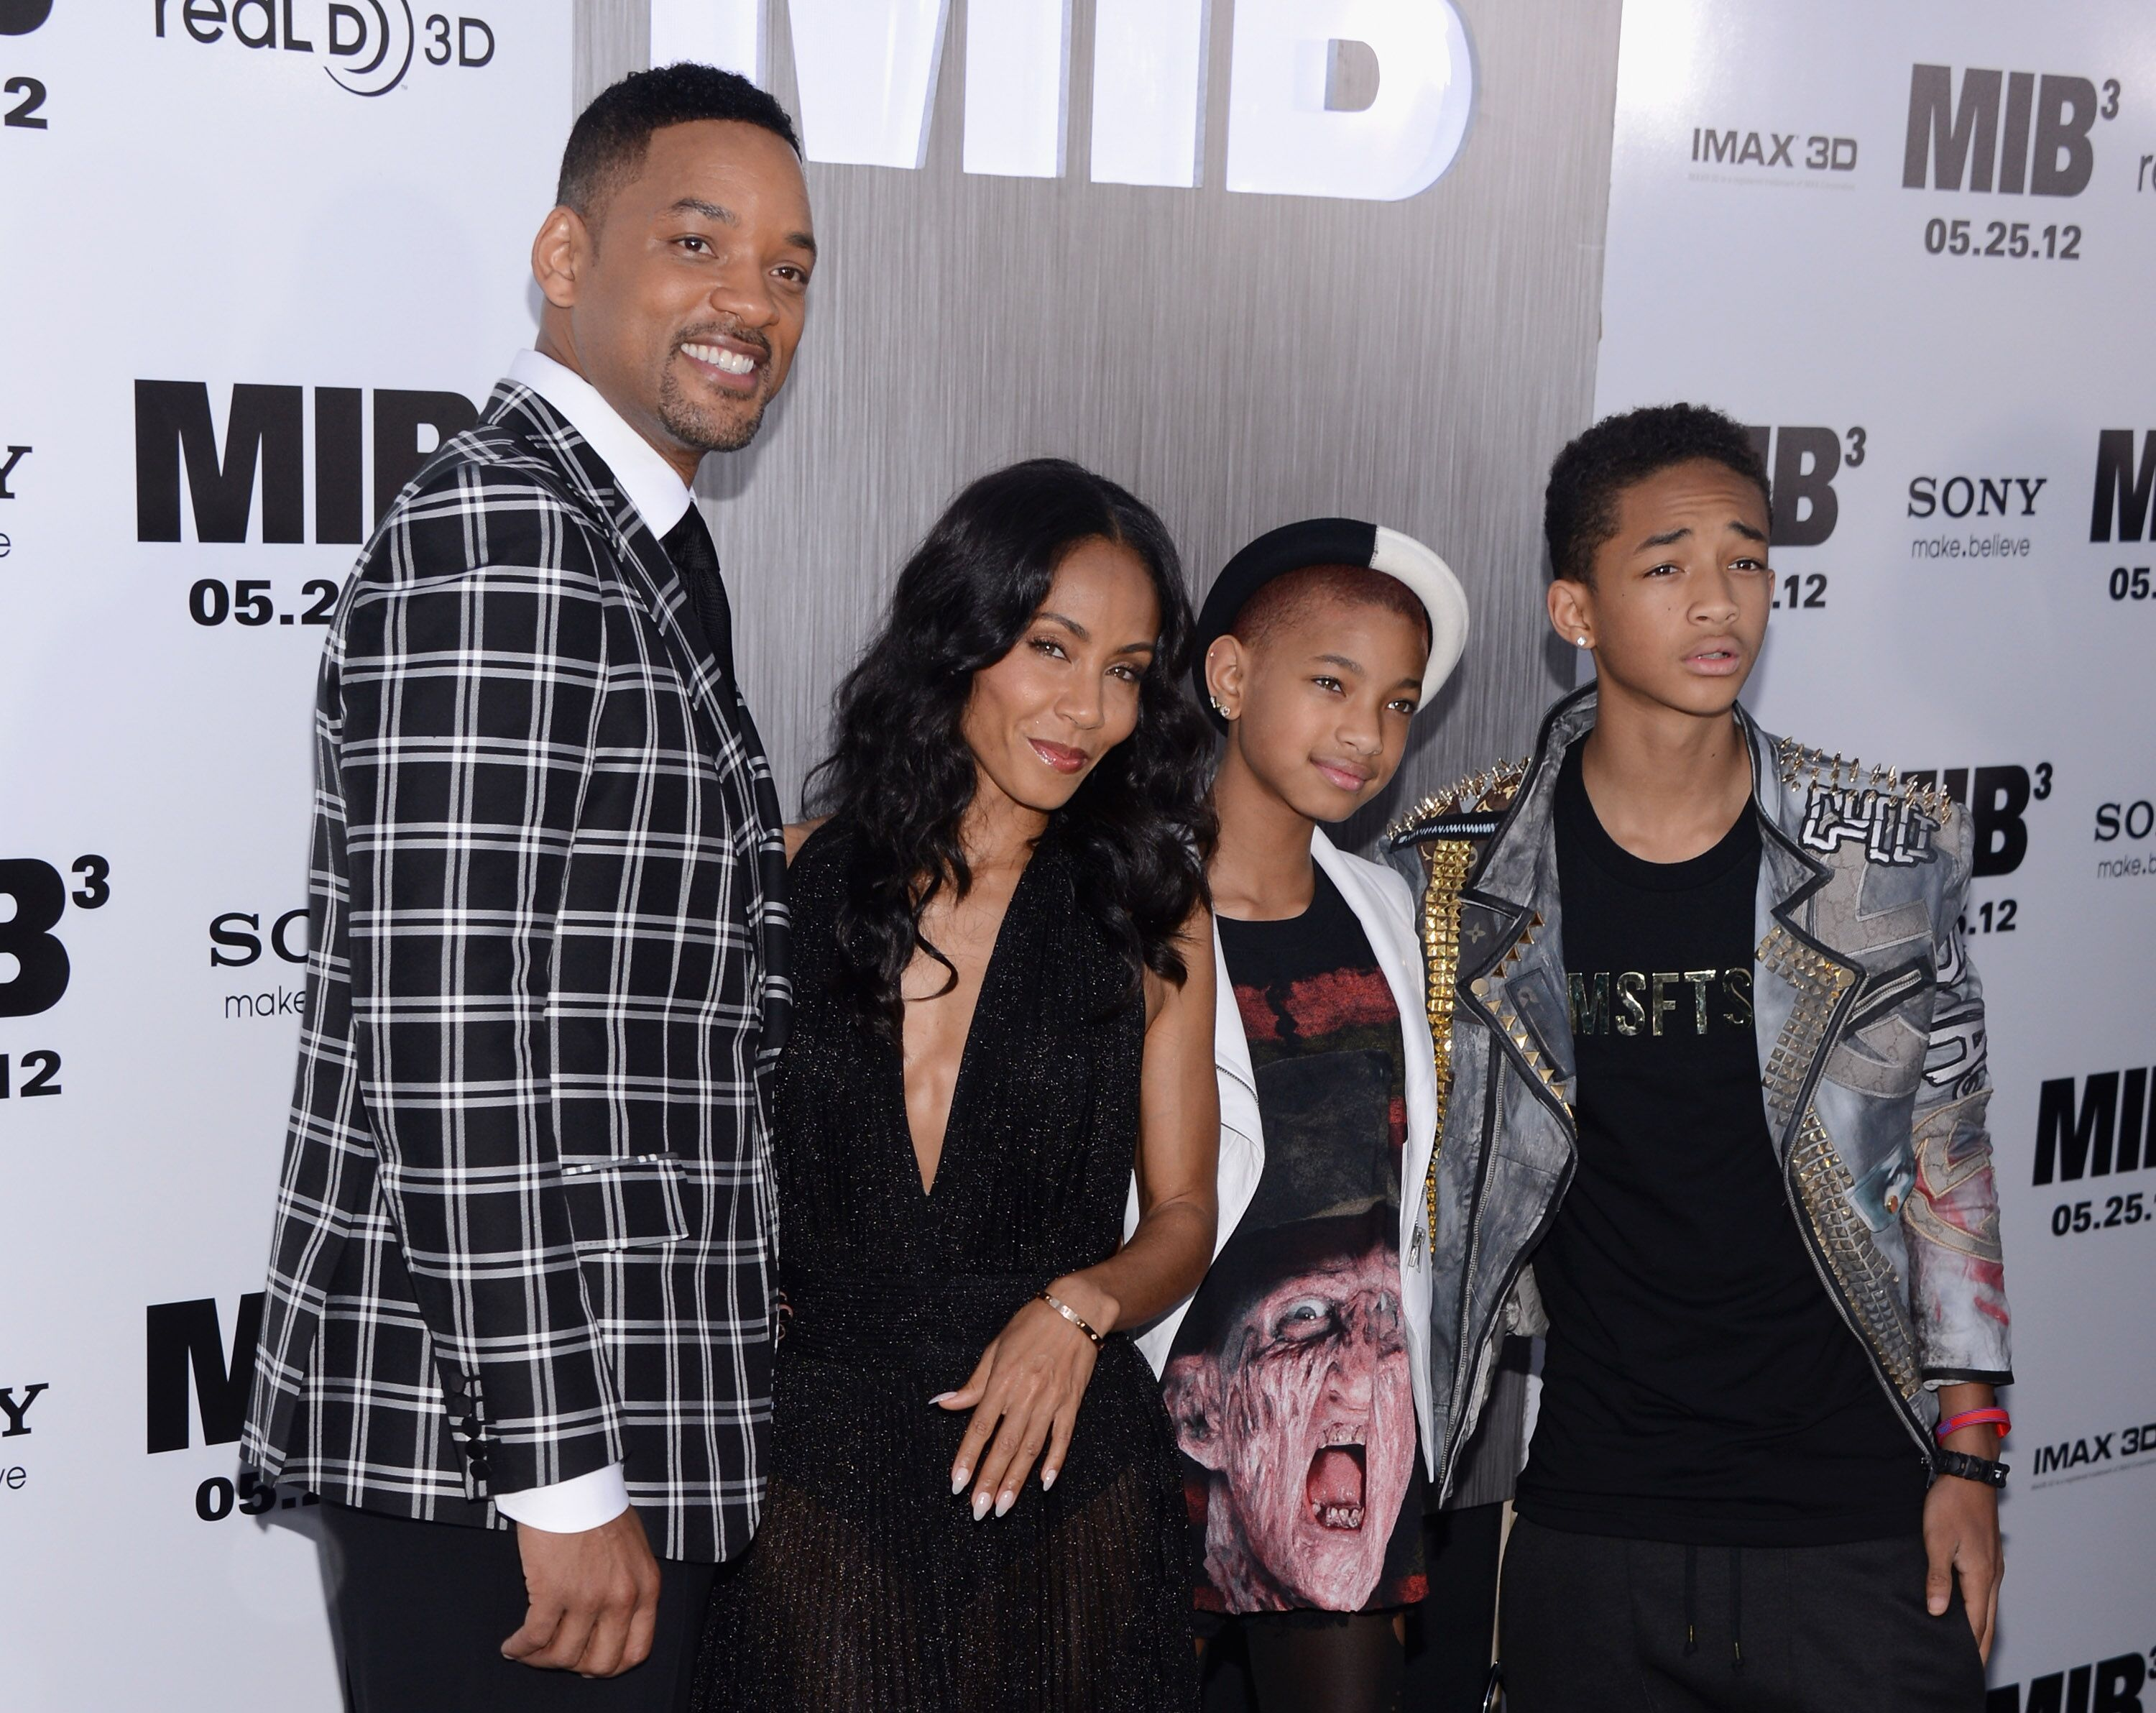 """Will Smith, Jada Pinkett Smith, Willow Smith and Jaden Smith attend the """"Men In Black 3."""" 